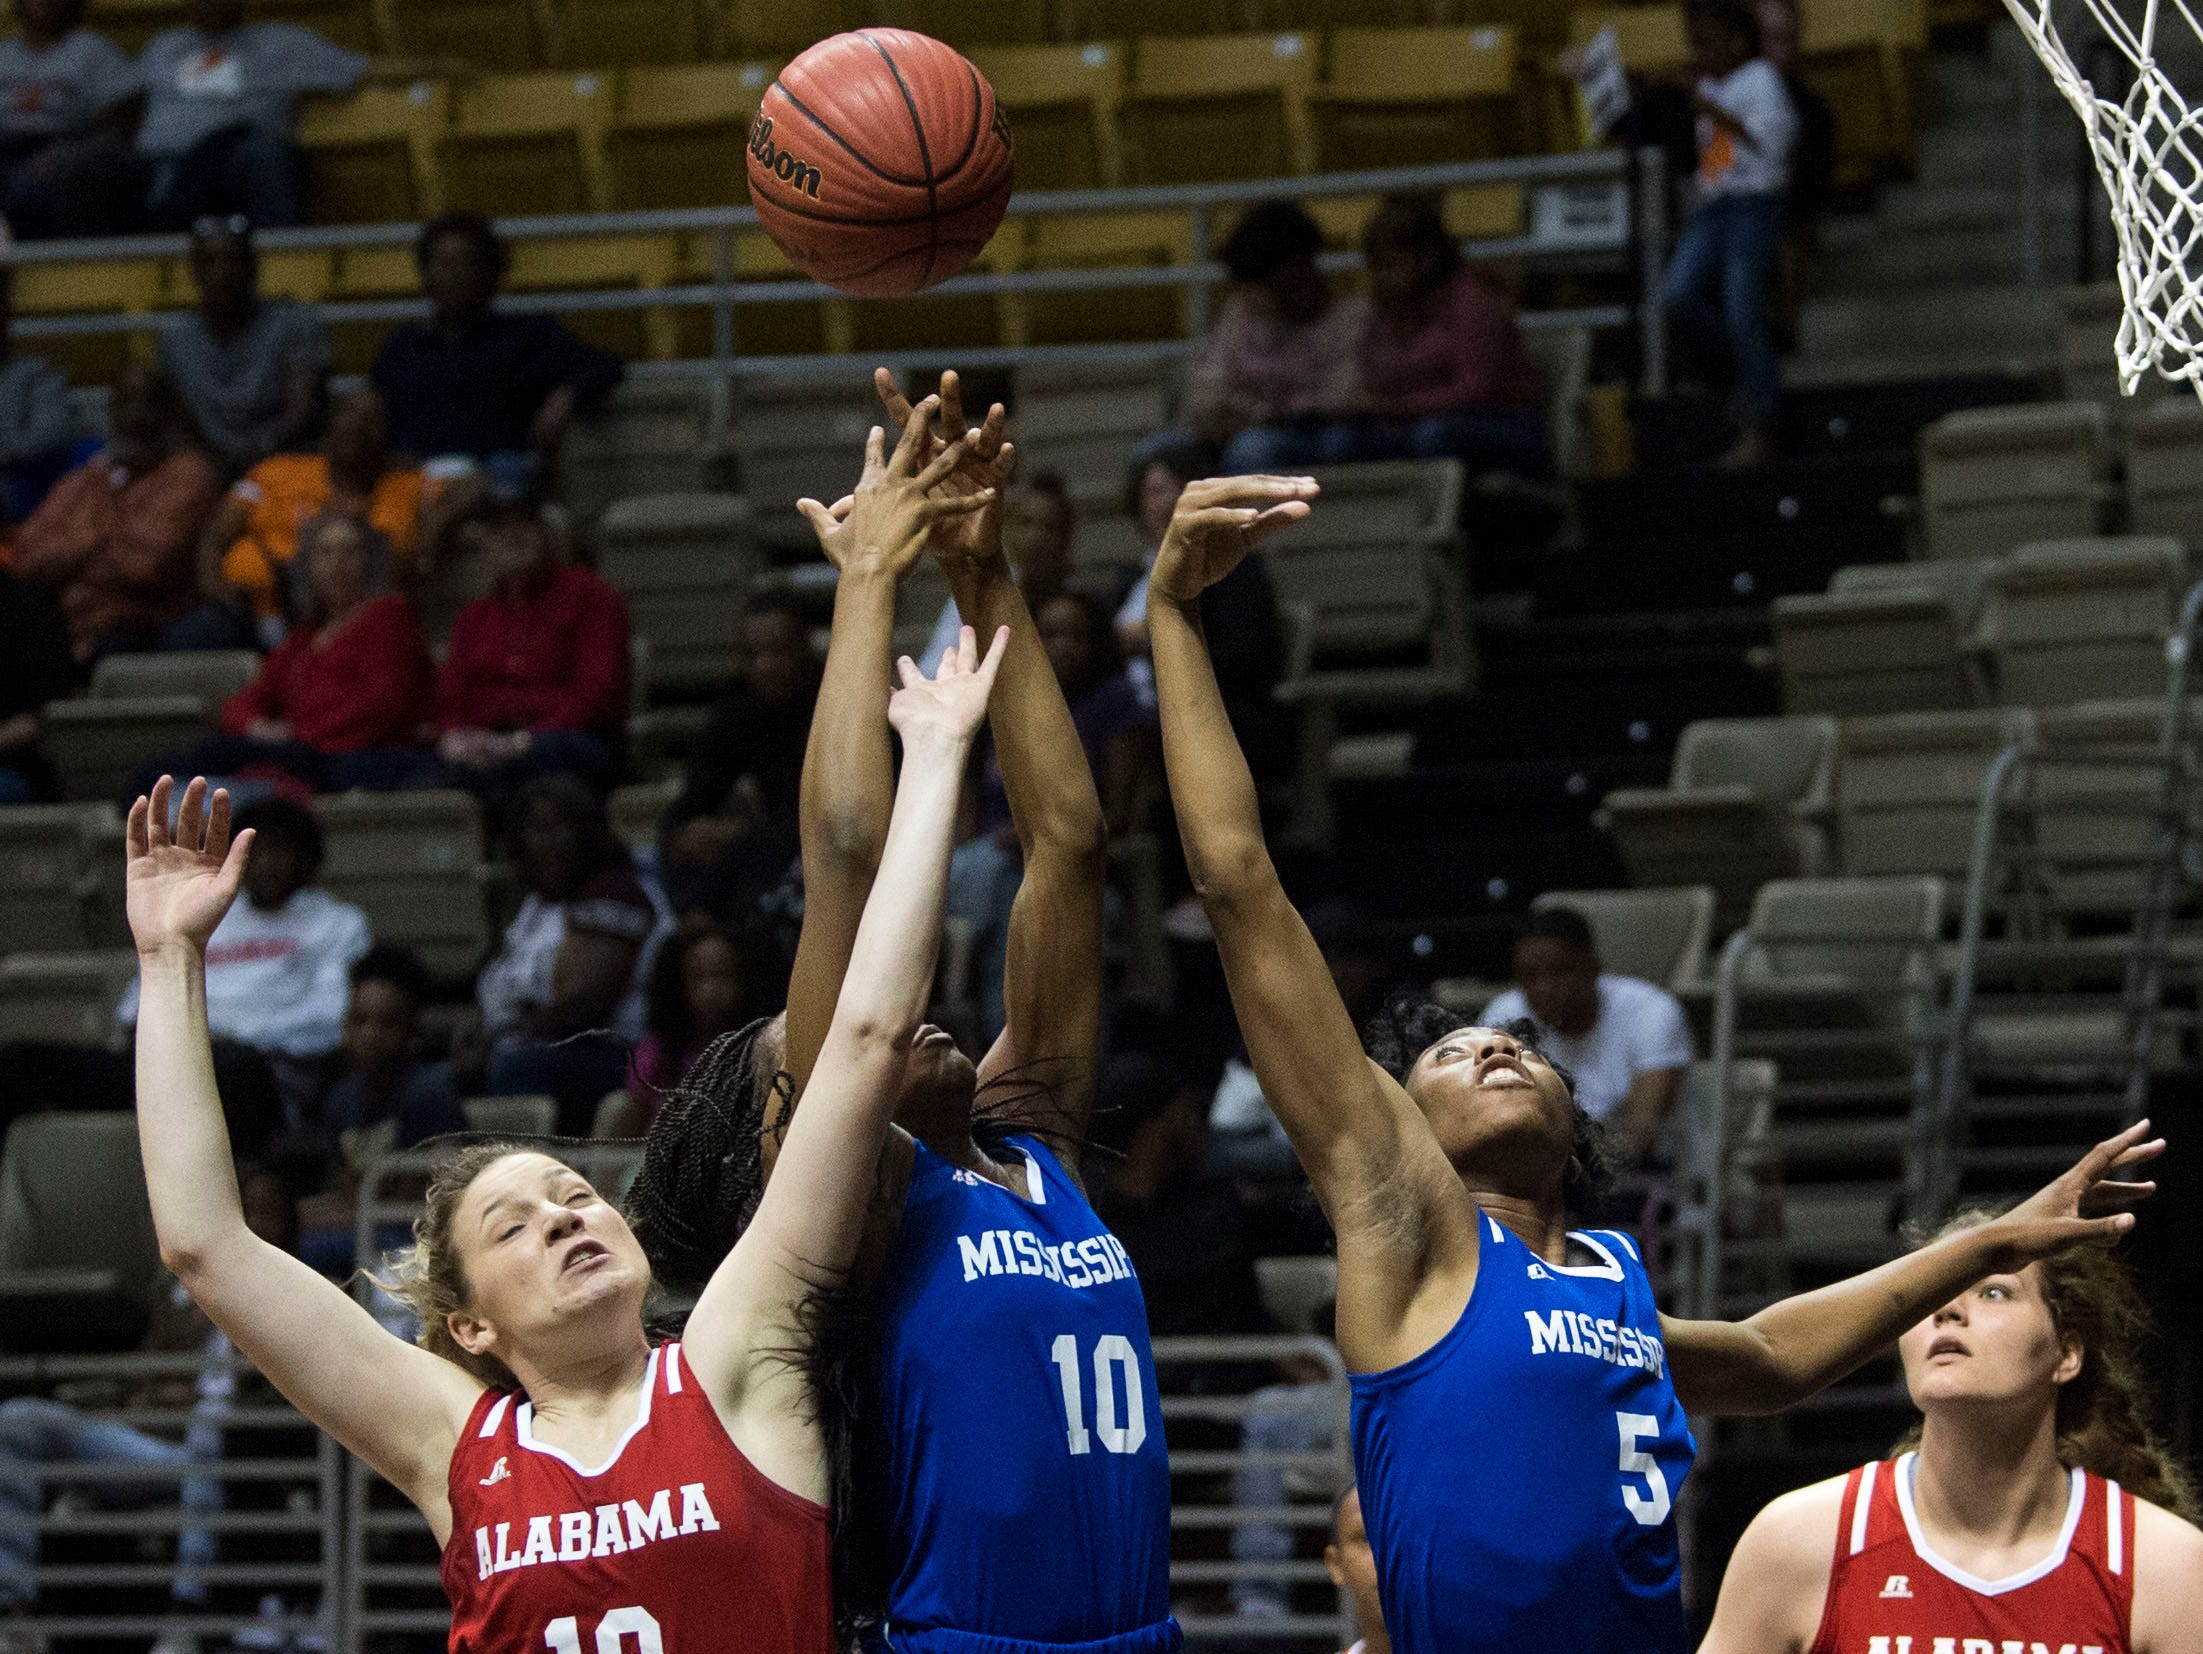 Alabama's Annie Hughes (10), from left, Mississippi's Hannah White (10) and Ebony Gayden (5) go up for a rebound during the Alabama-Mississippi All-Star game at the Dunn-Oliver Acadome in Montgomery, Ala., on Friday, March 15, 2019. Alabama All-stars defeated the Mississippi All-stars 101-82.